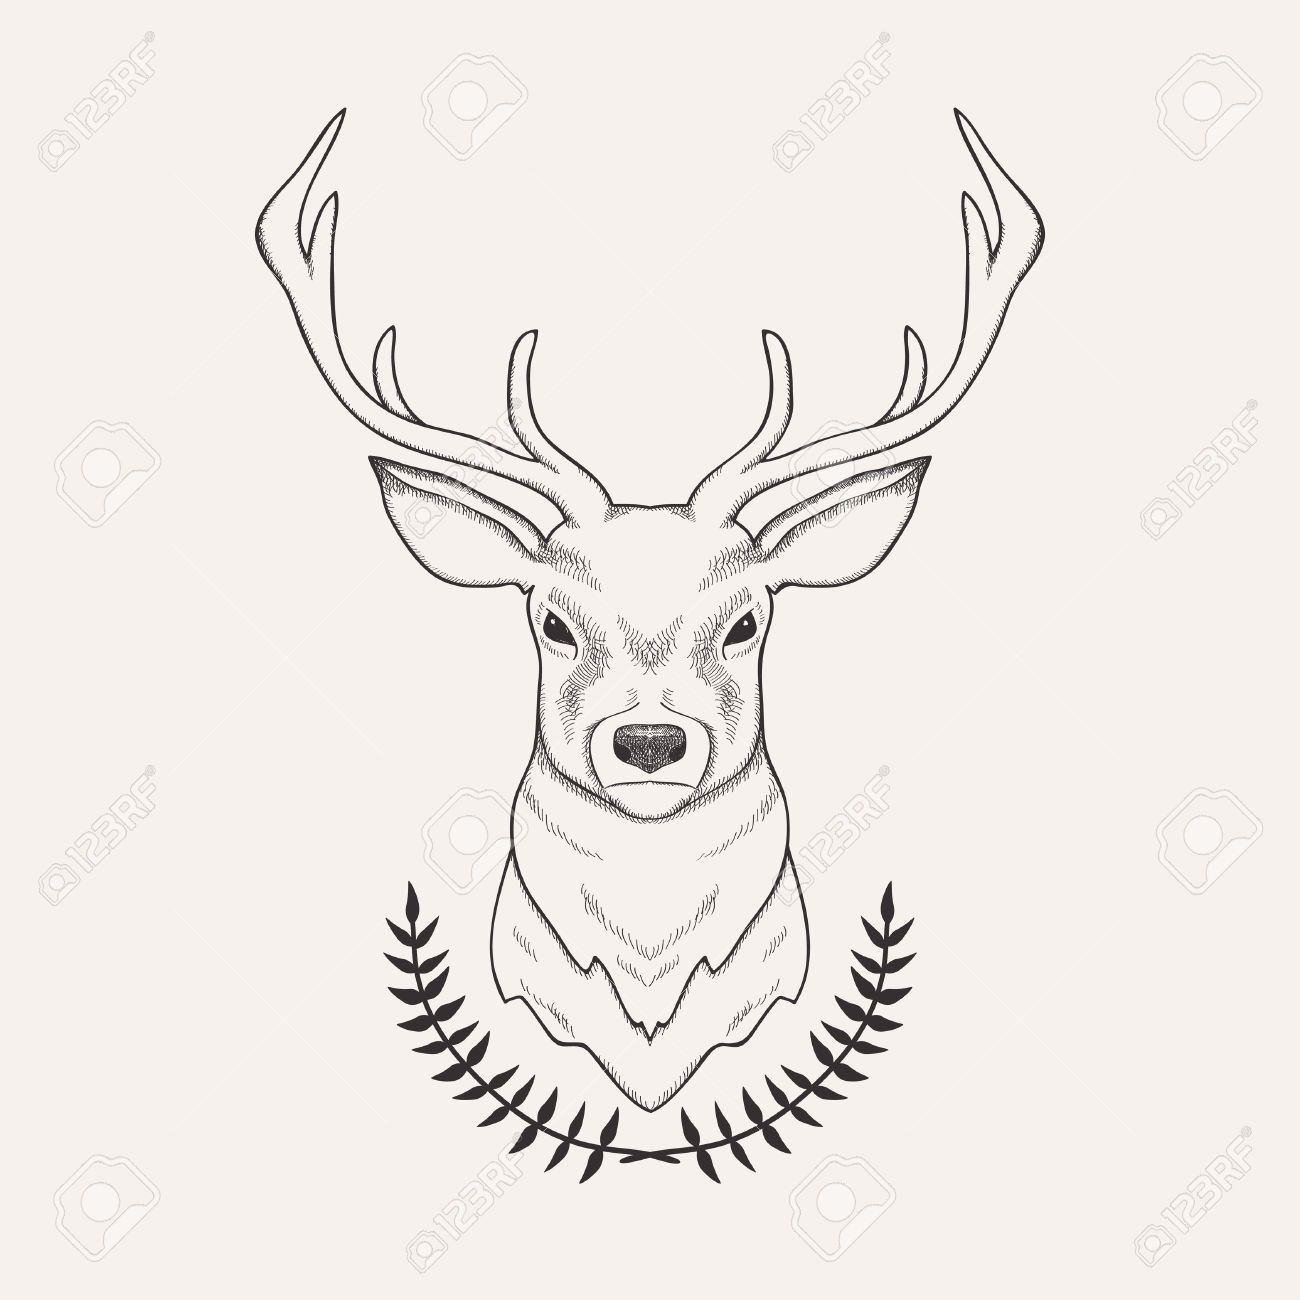 Vector hand drawn illustration of deer and laurel royalty free